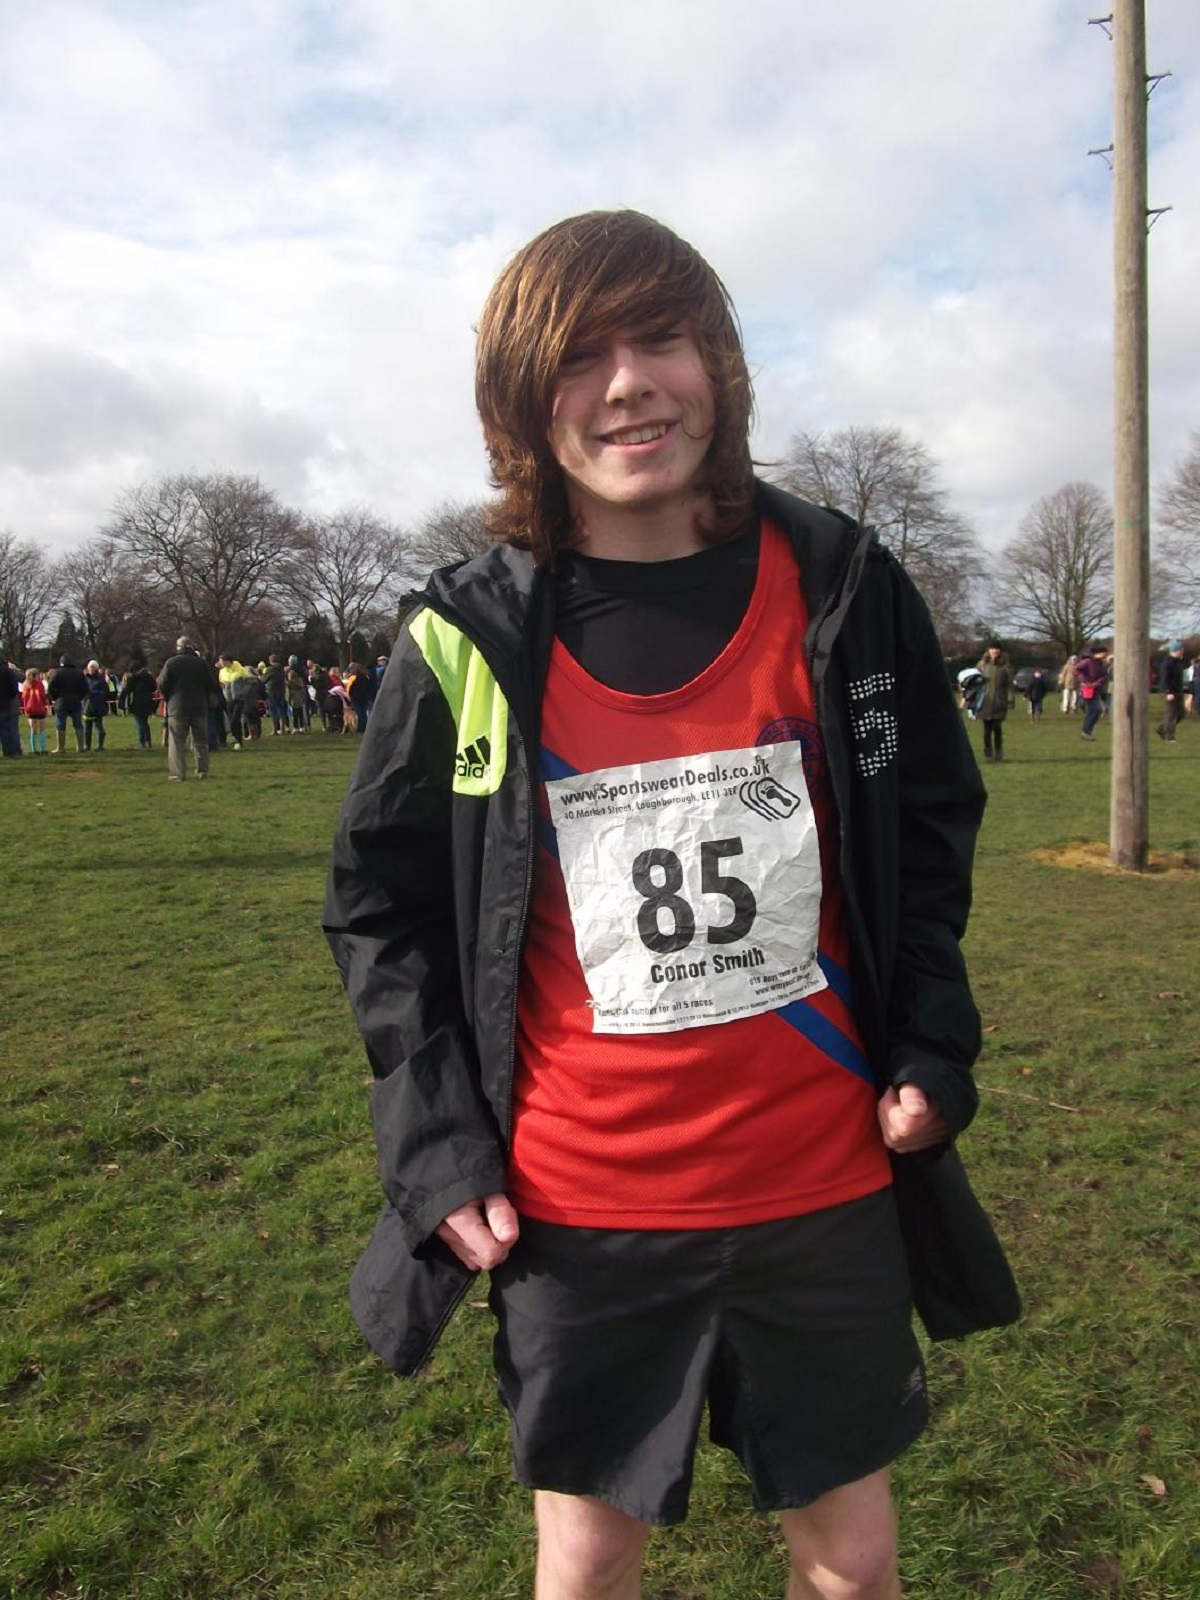 Under-15s Champions: Bromsgrove and Redditch AC member Conor Smith won the West Midlands title.